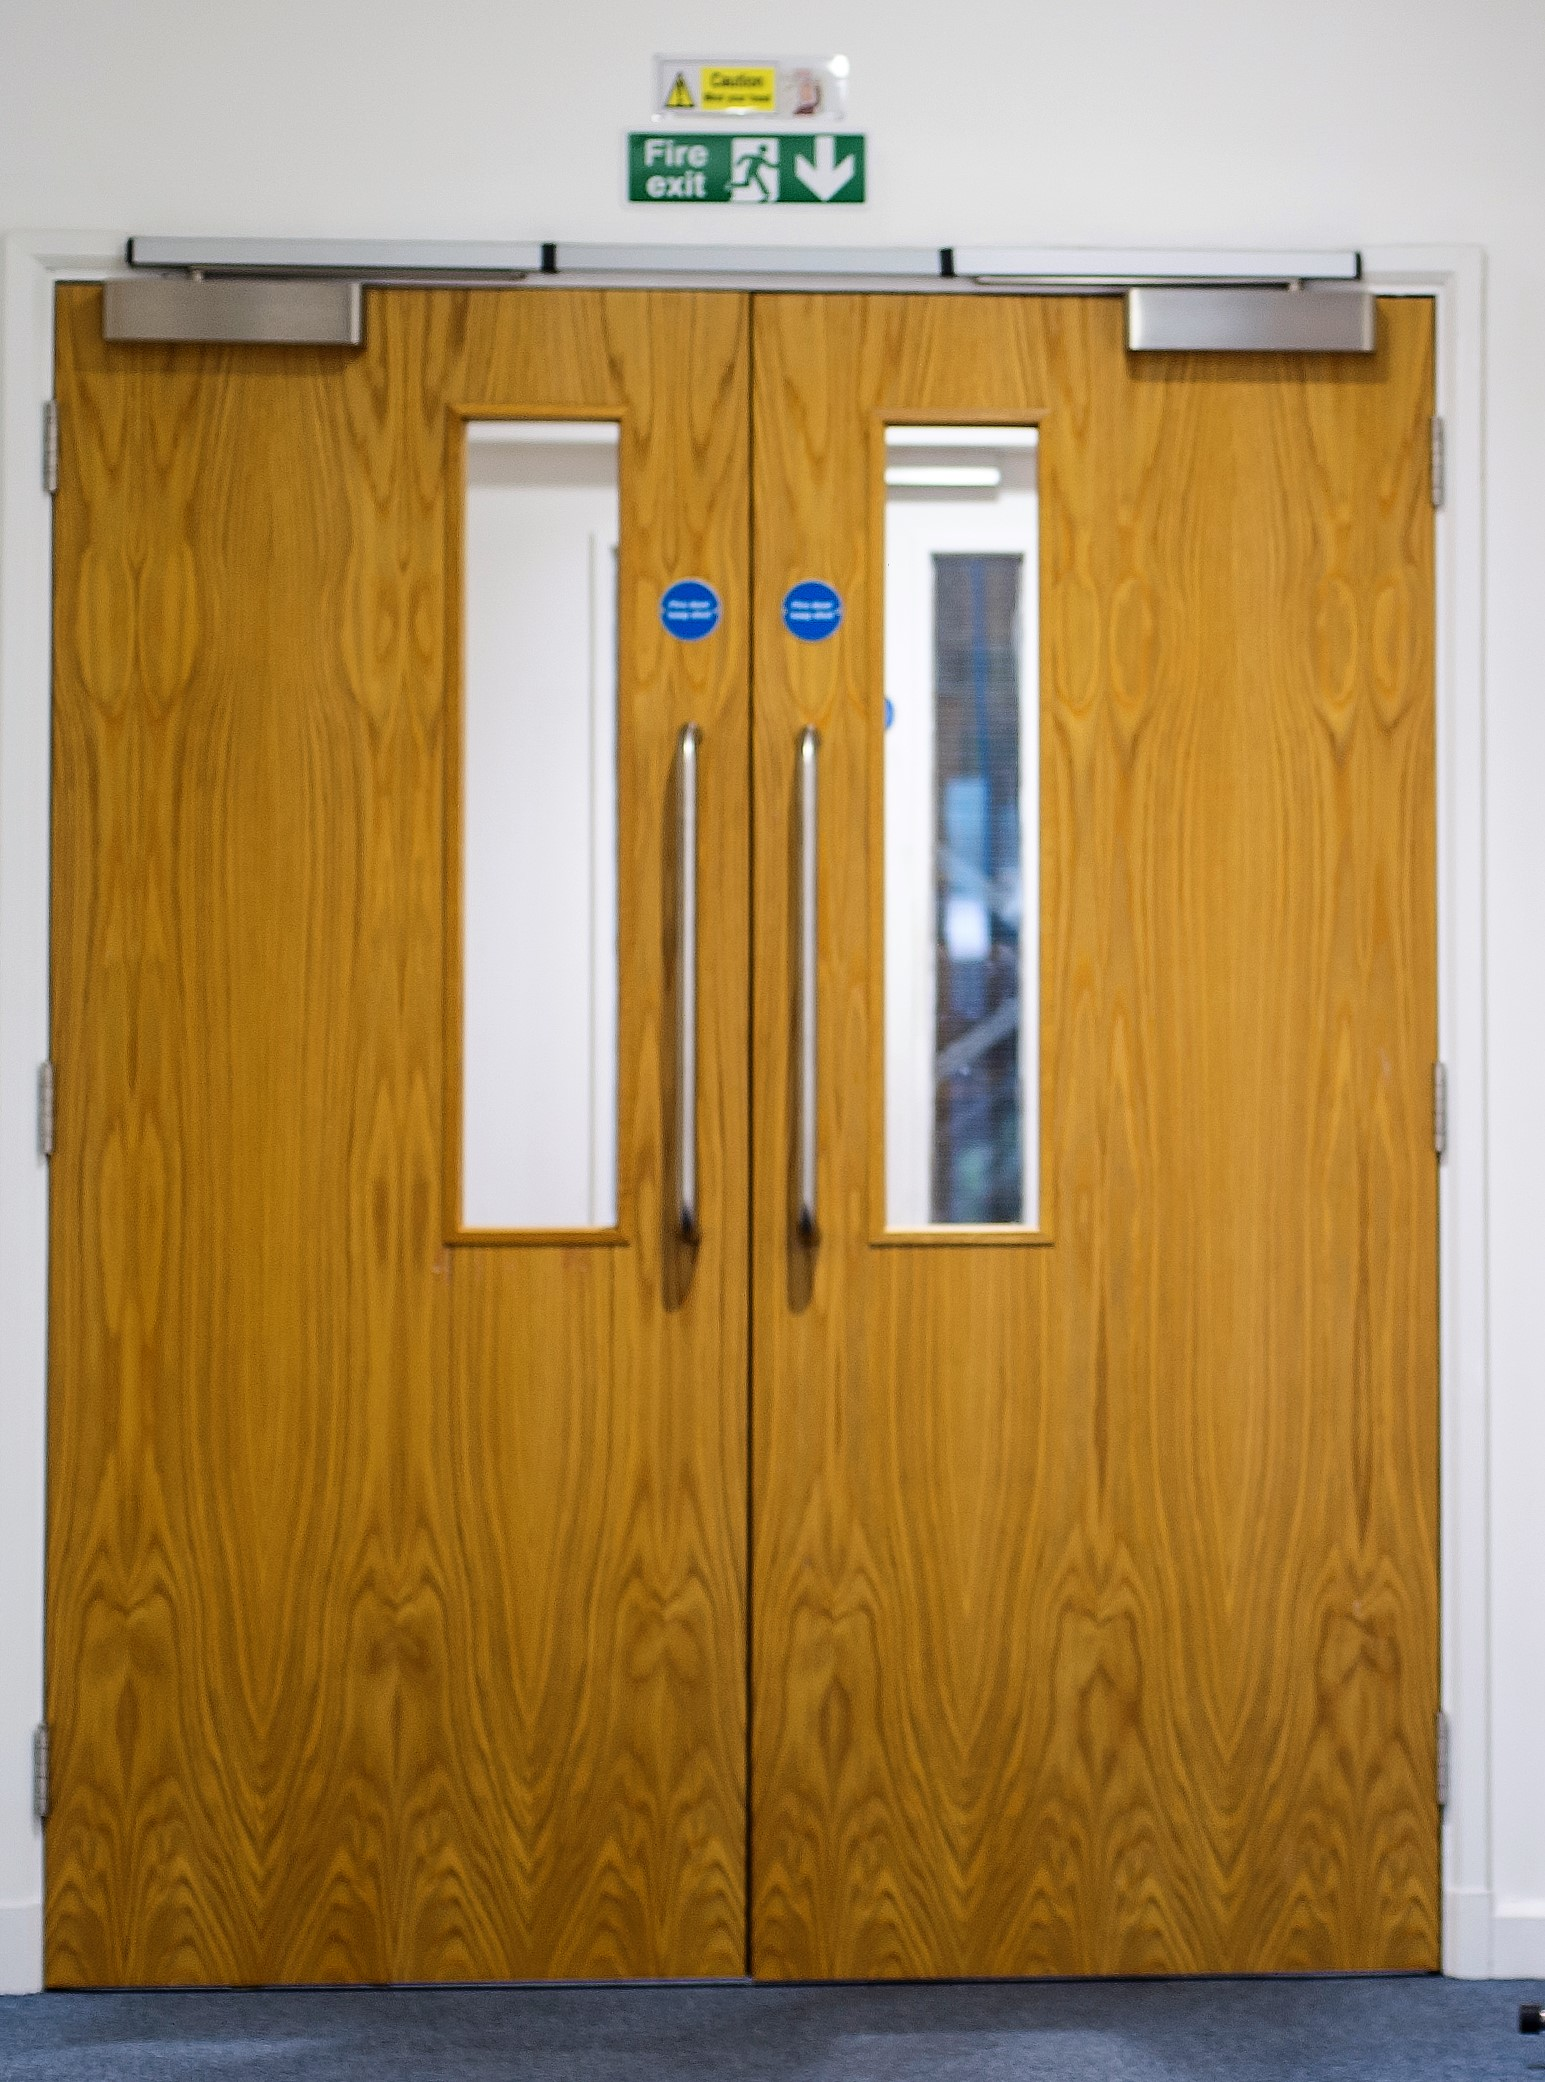 Fire Door Safety: Crucial Checks